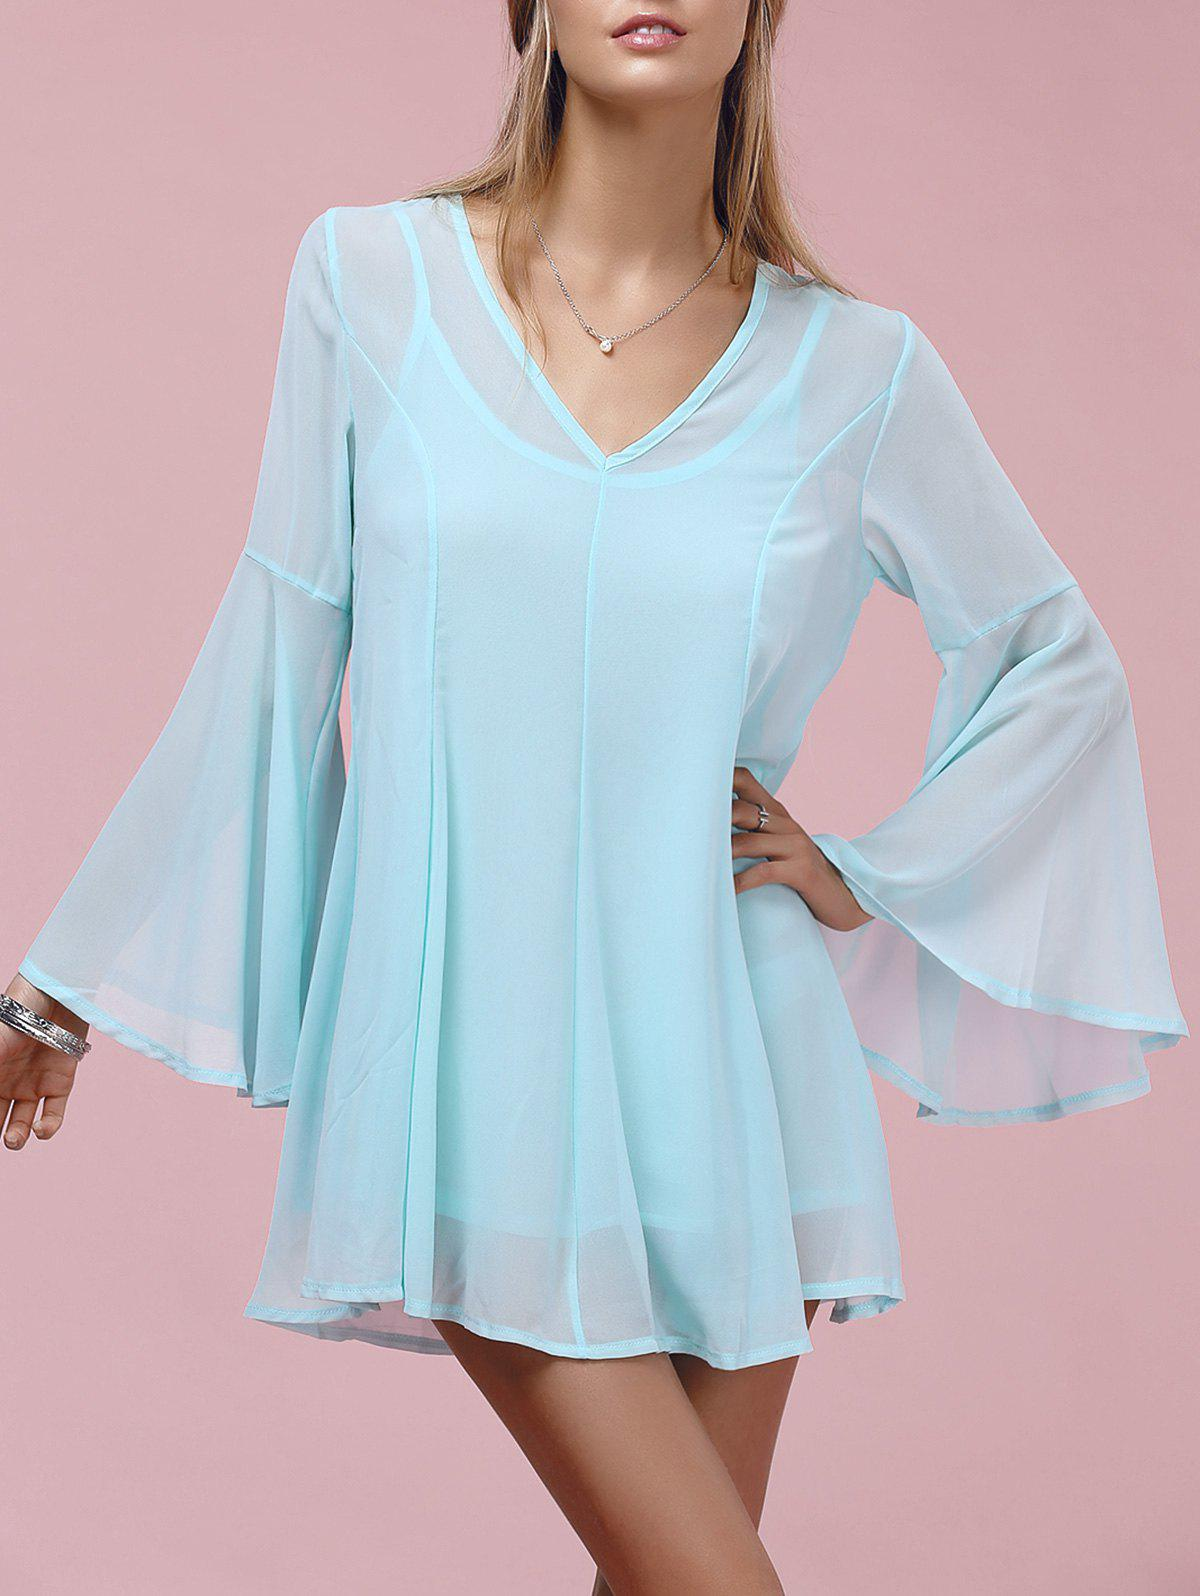 Stylish Women's V-Neck Bell Sleeve Chiffon Dress Twinset